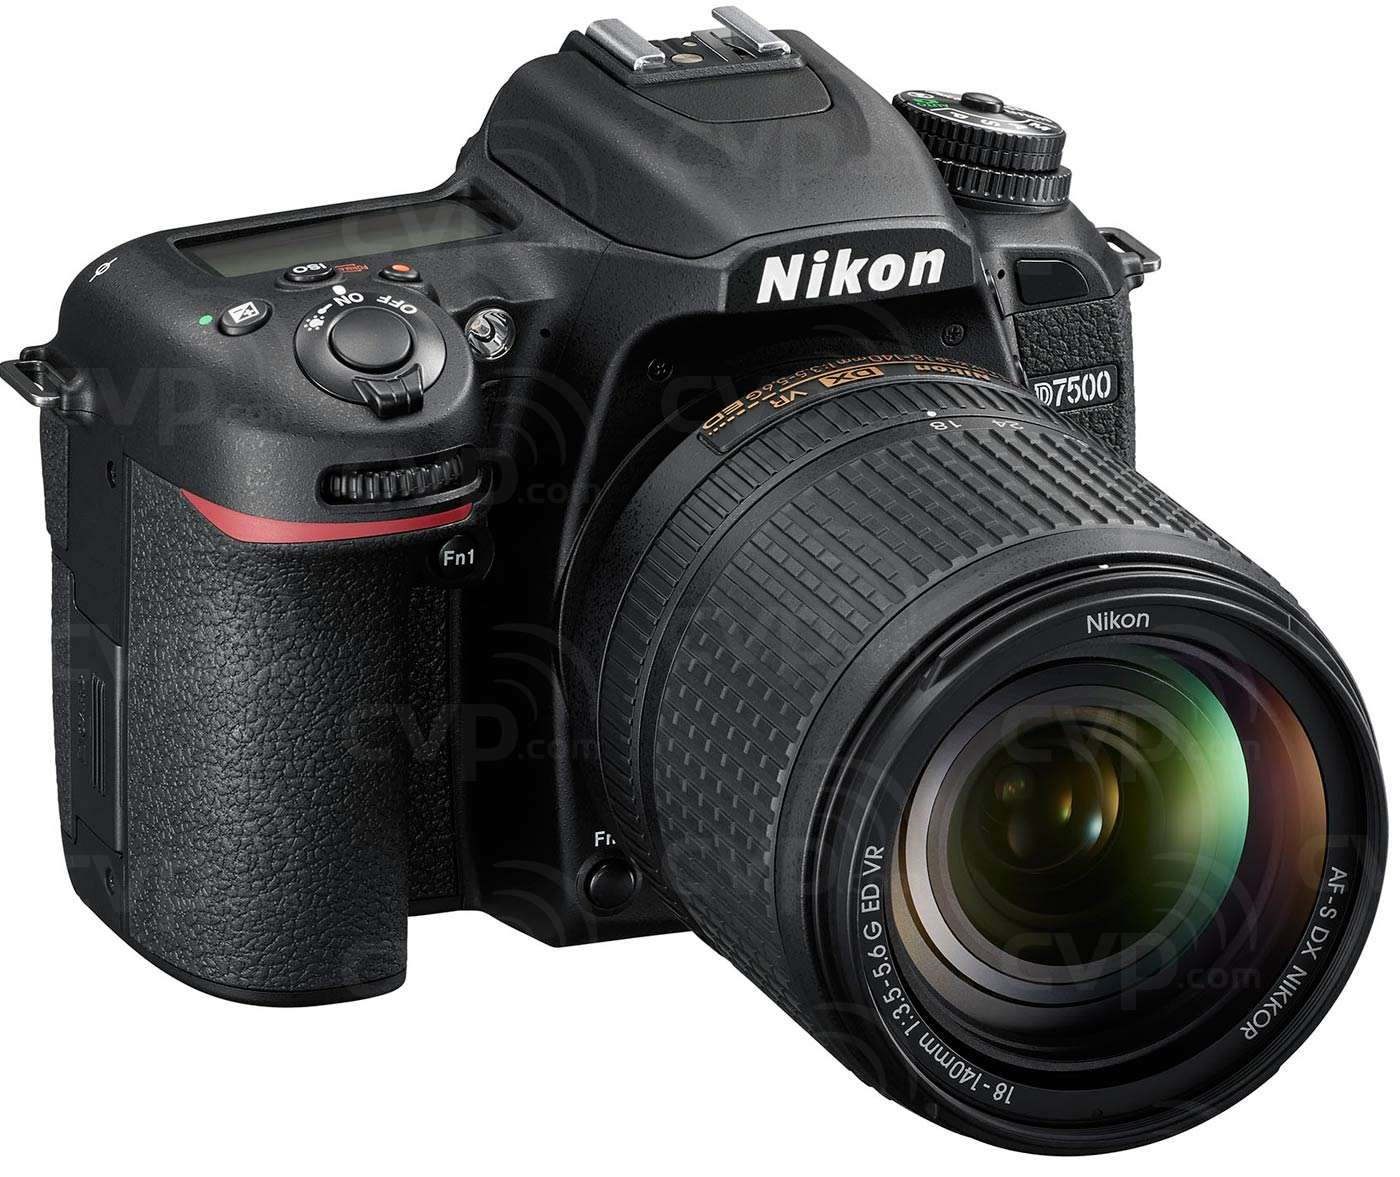 Nikon D7500 20.9 Megapixel DX-format Digital SLR Camera with 18-140mm